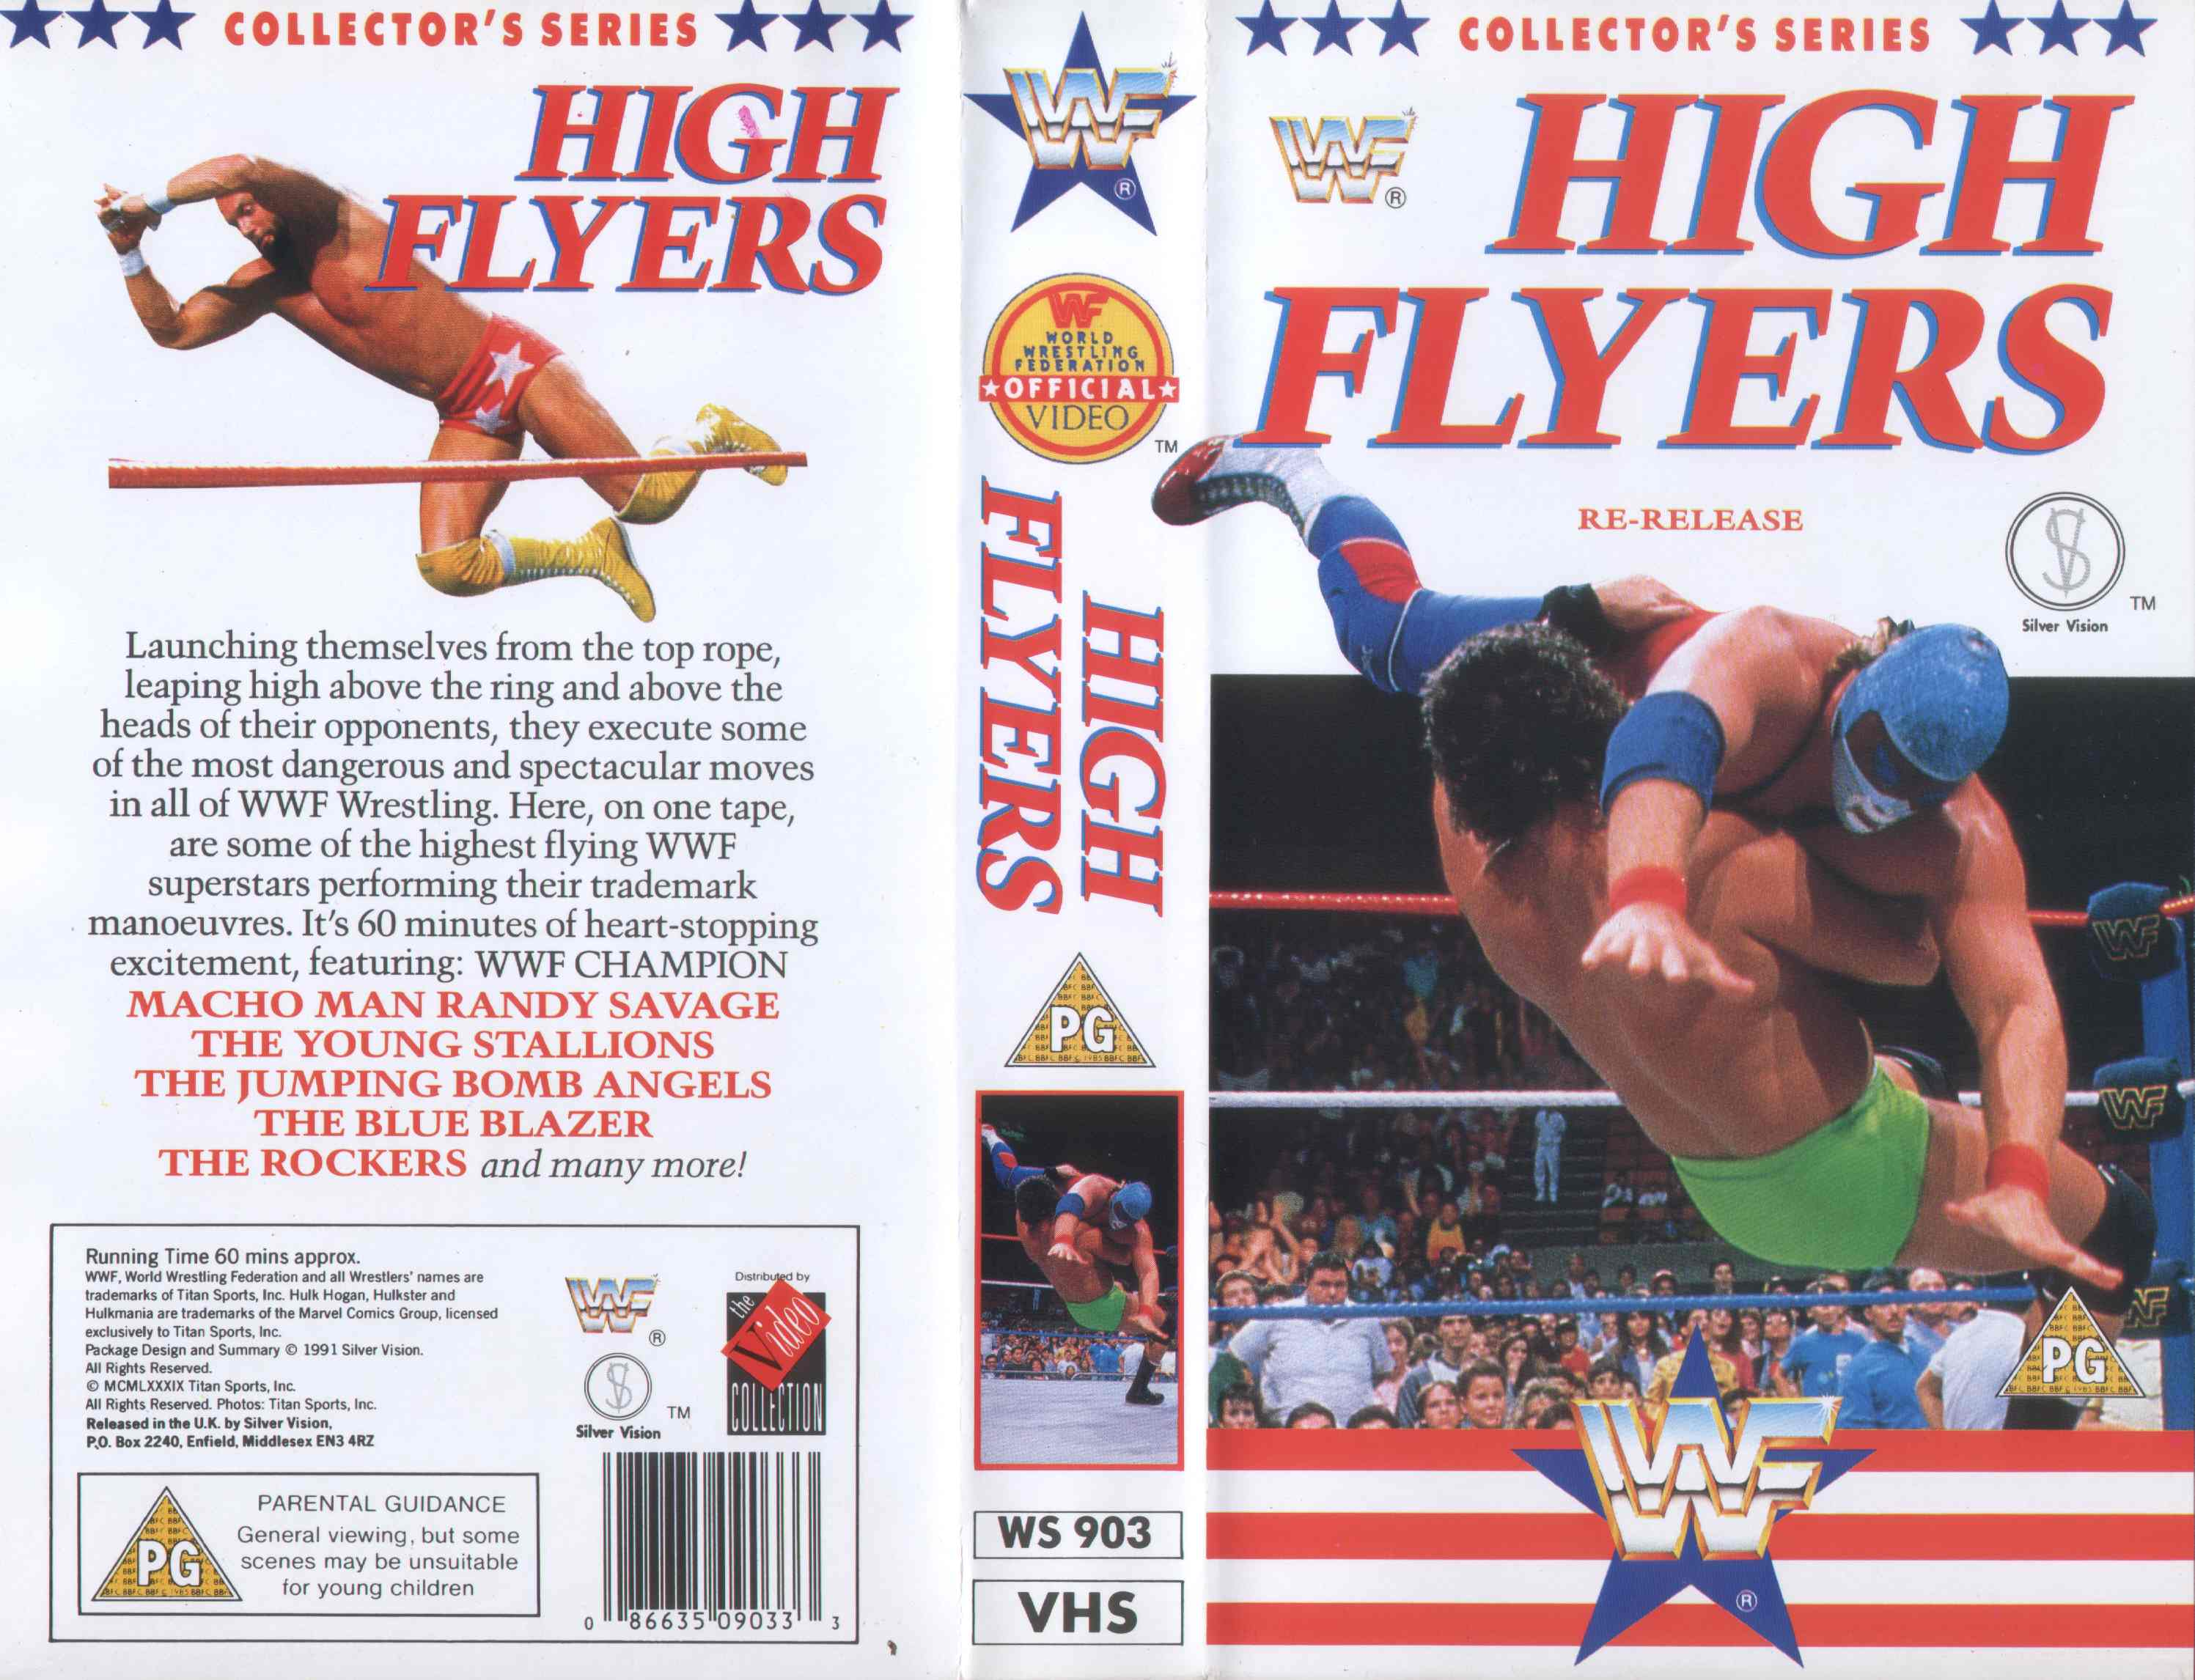 WWF_High_Flyers_-_Cover